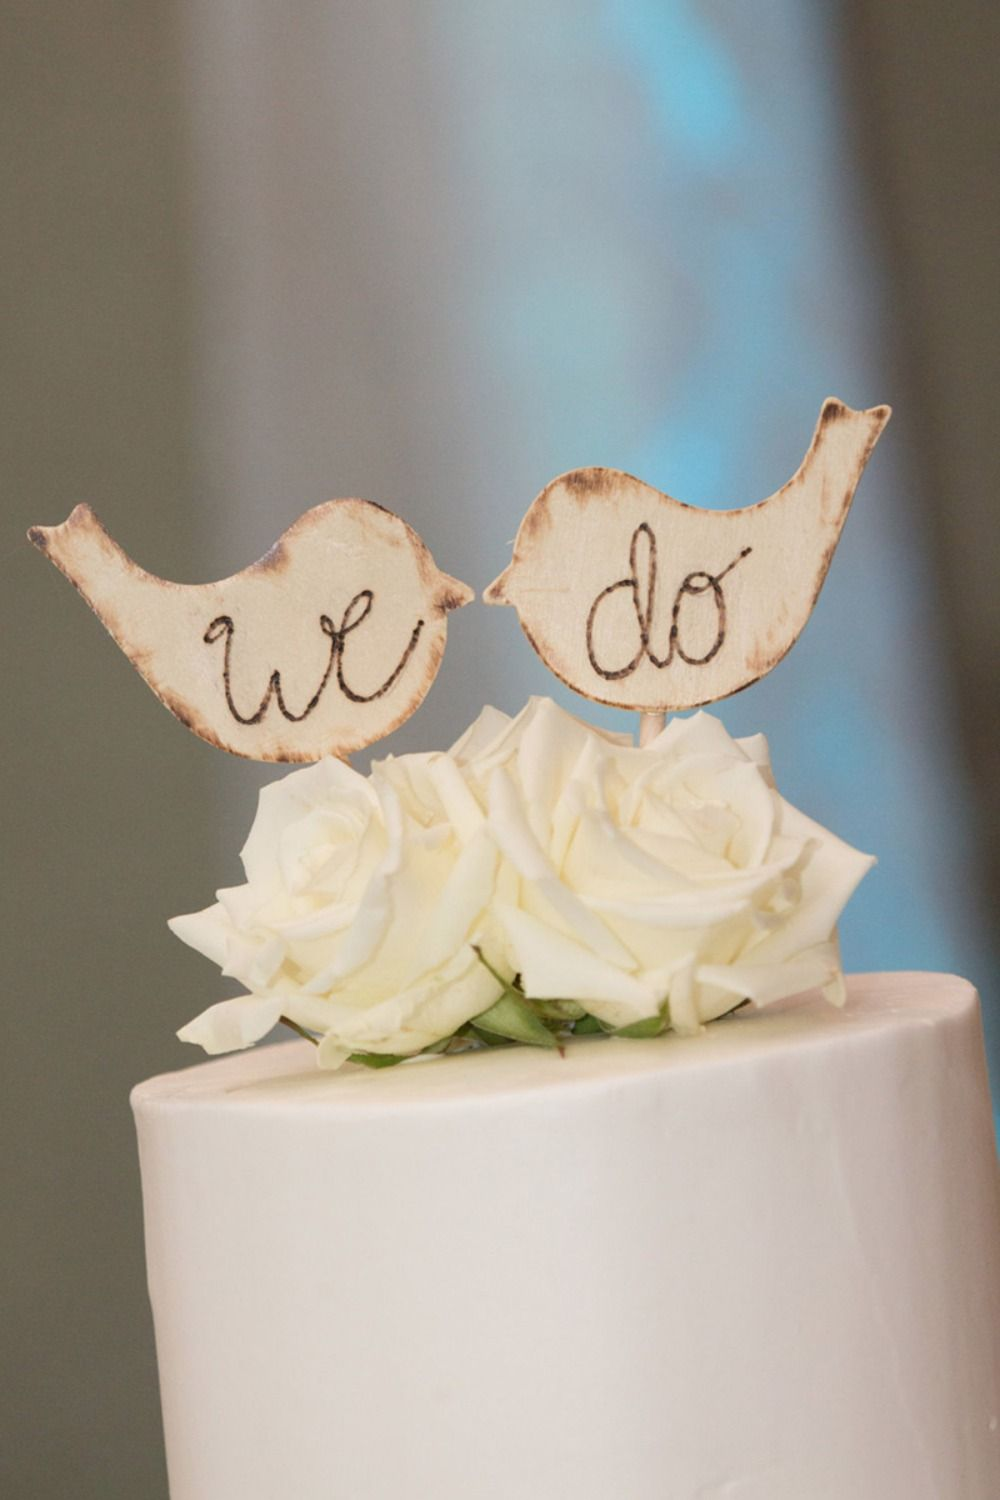 16. These wooden love birds from RusticDarlingCottage shop are quite the pair… (Wedding Cake Simple)